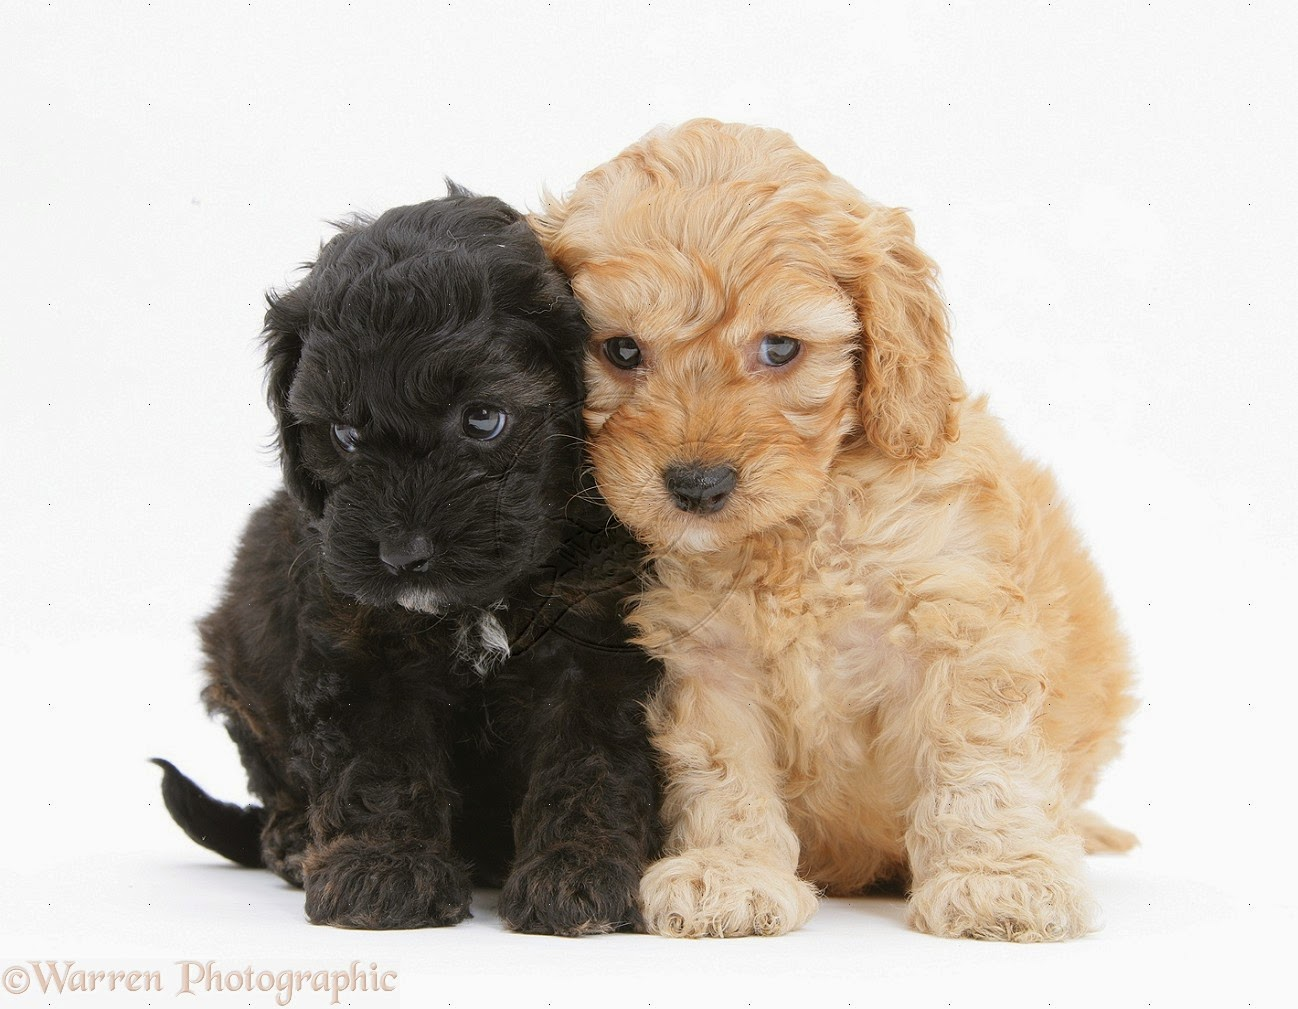 Rules of the Jungle: Cockapoo puppies